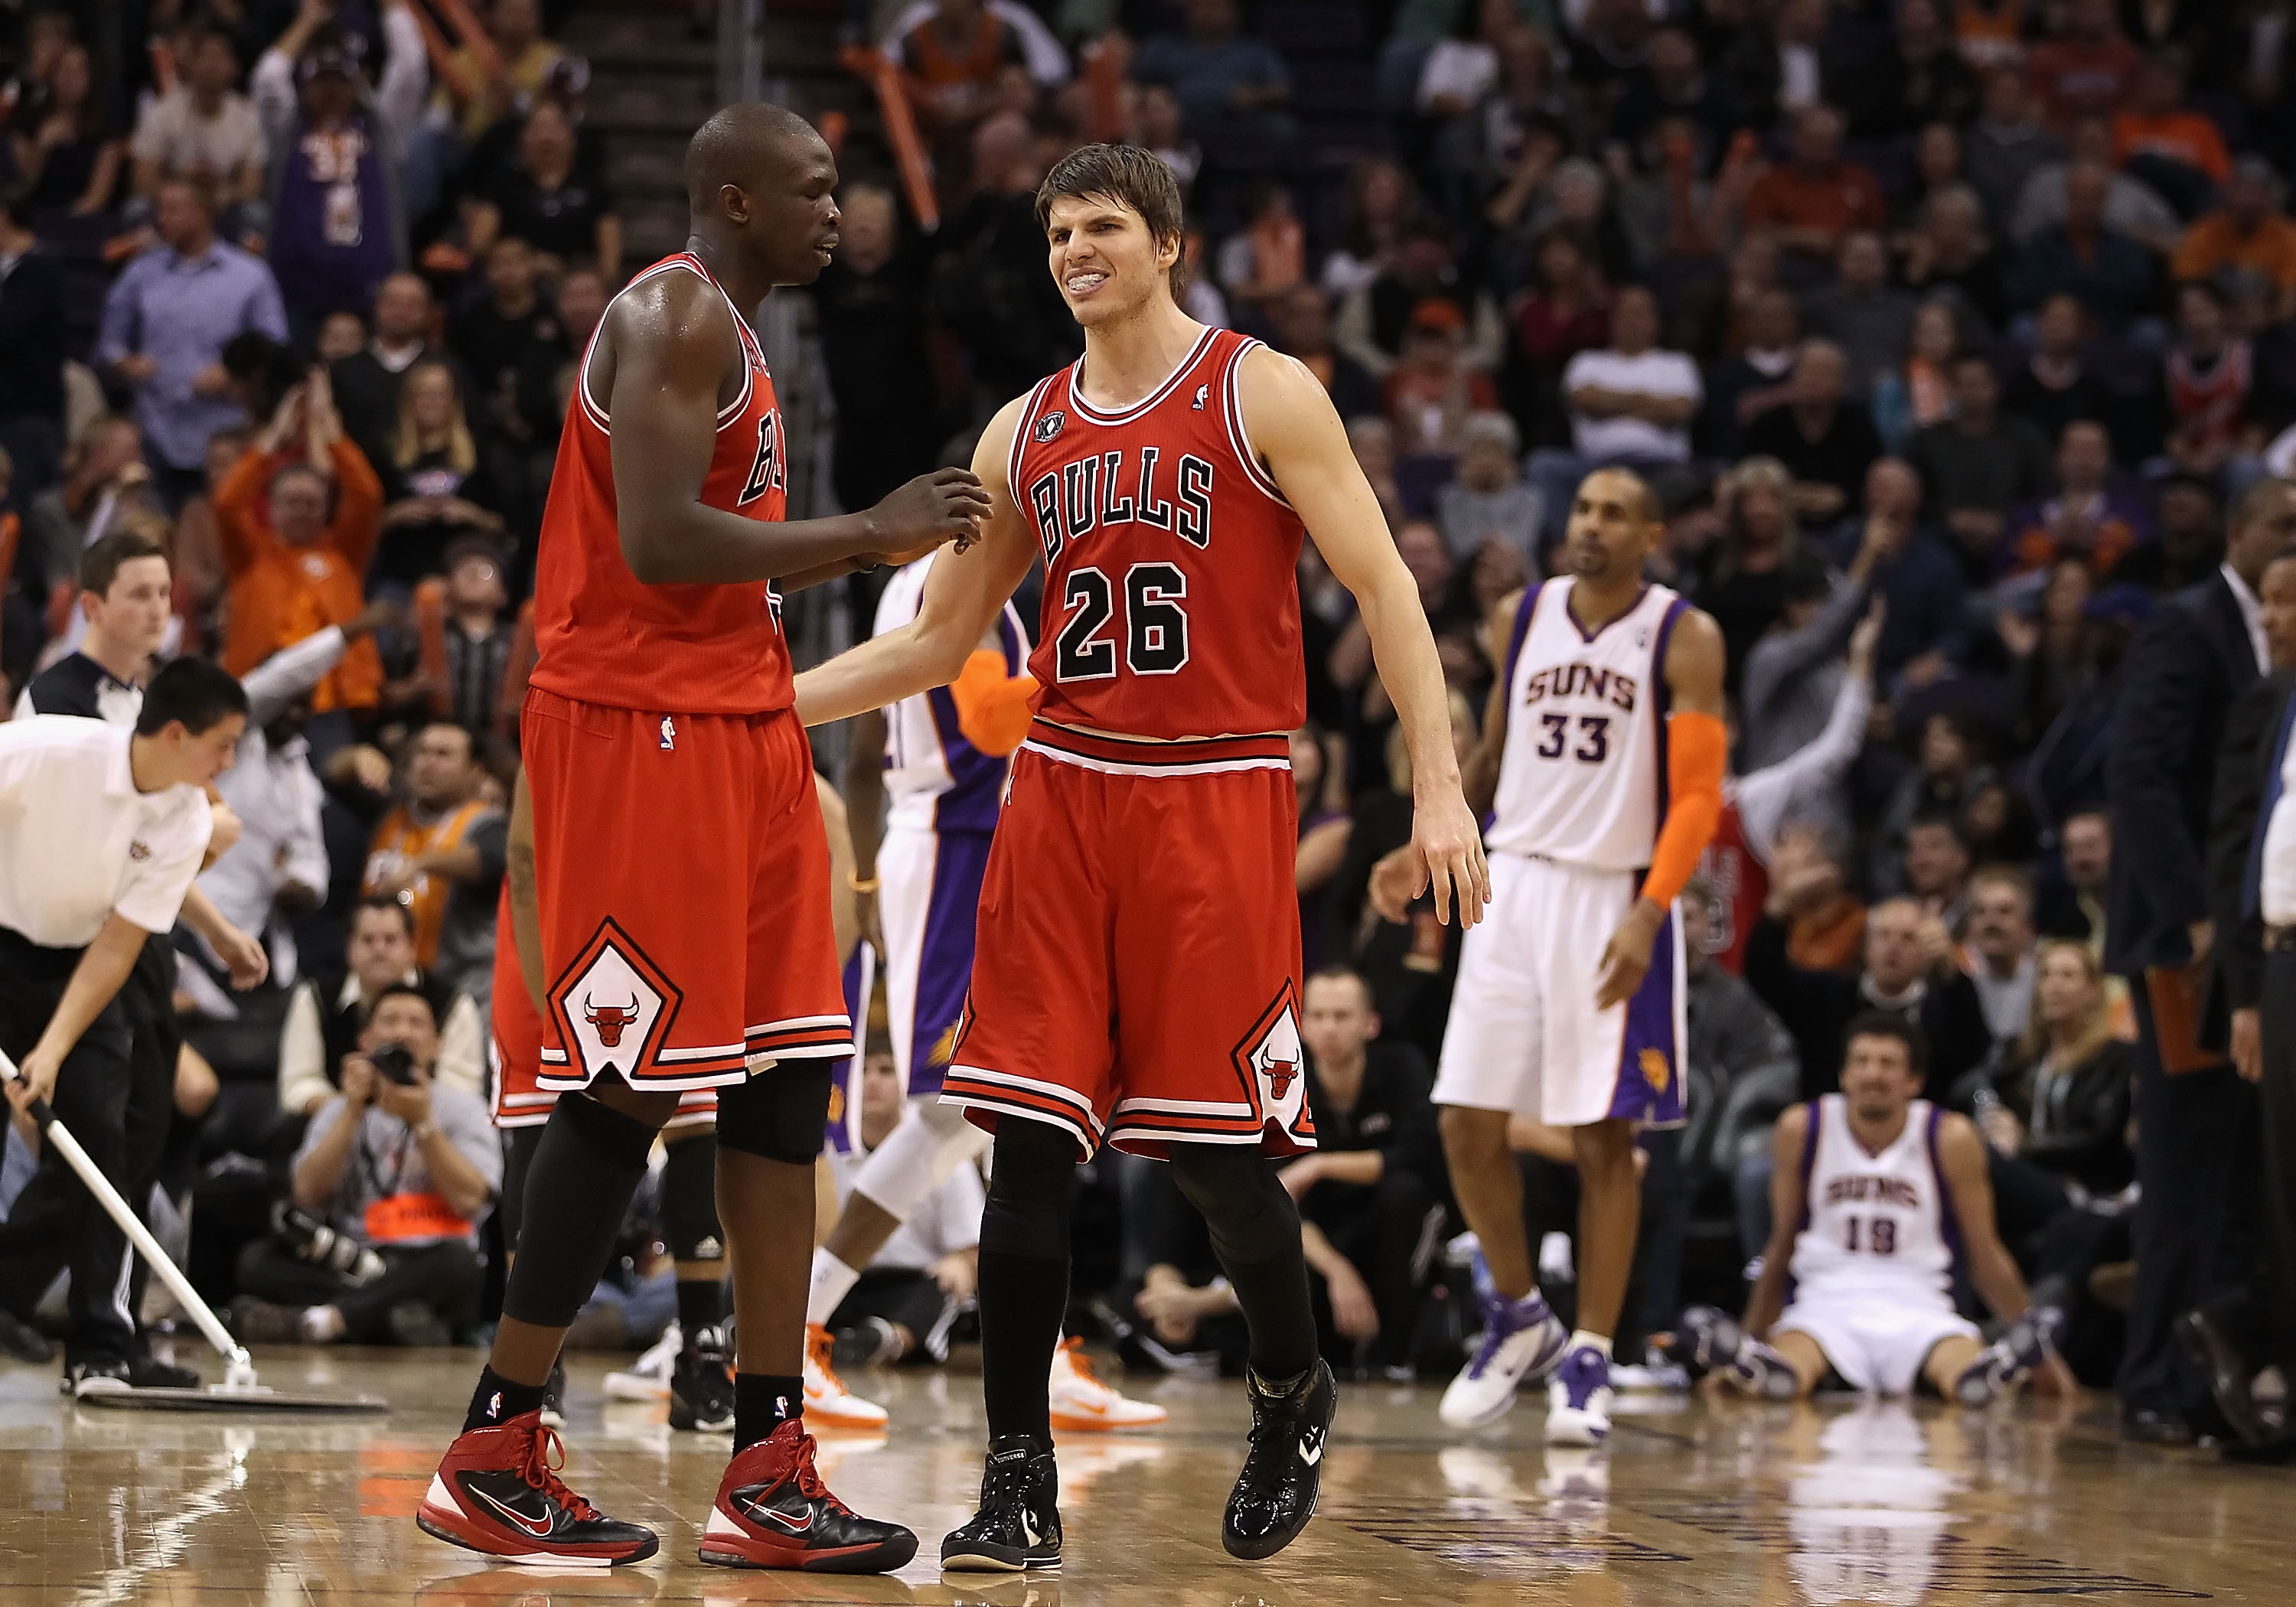 PHOENIX - NOVEMBER 24:  Luol Deng #9 and Kyle Korver #26 of the Chicago Bulls react after scoring against the Phoenix Suns late in overtime of the NBA game at US Airways Center on November 24, 2010 in Phoenix, Arizona. The Bulls defeated the Suns 123-115